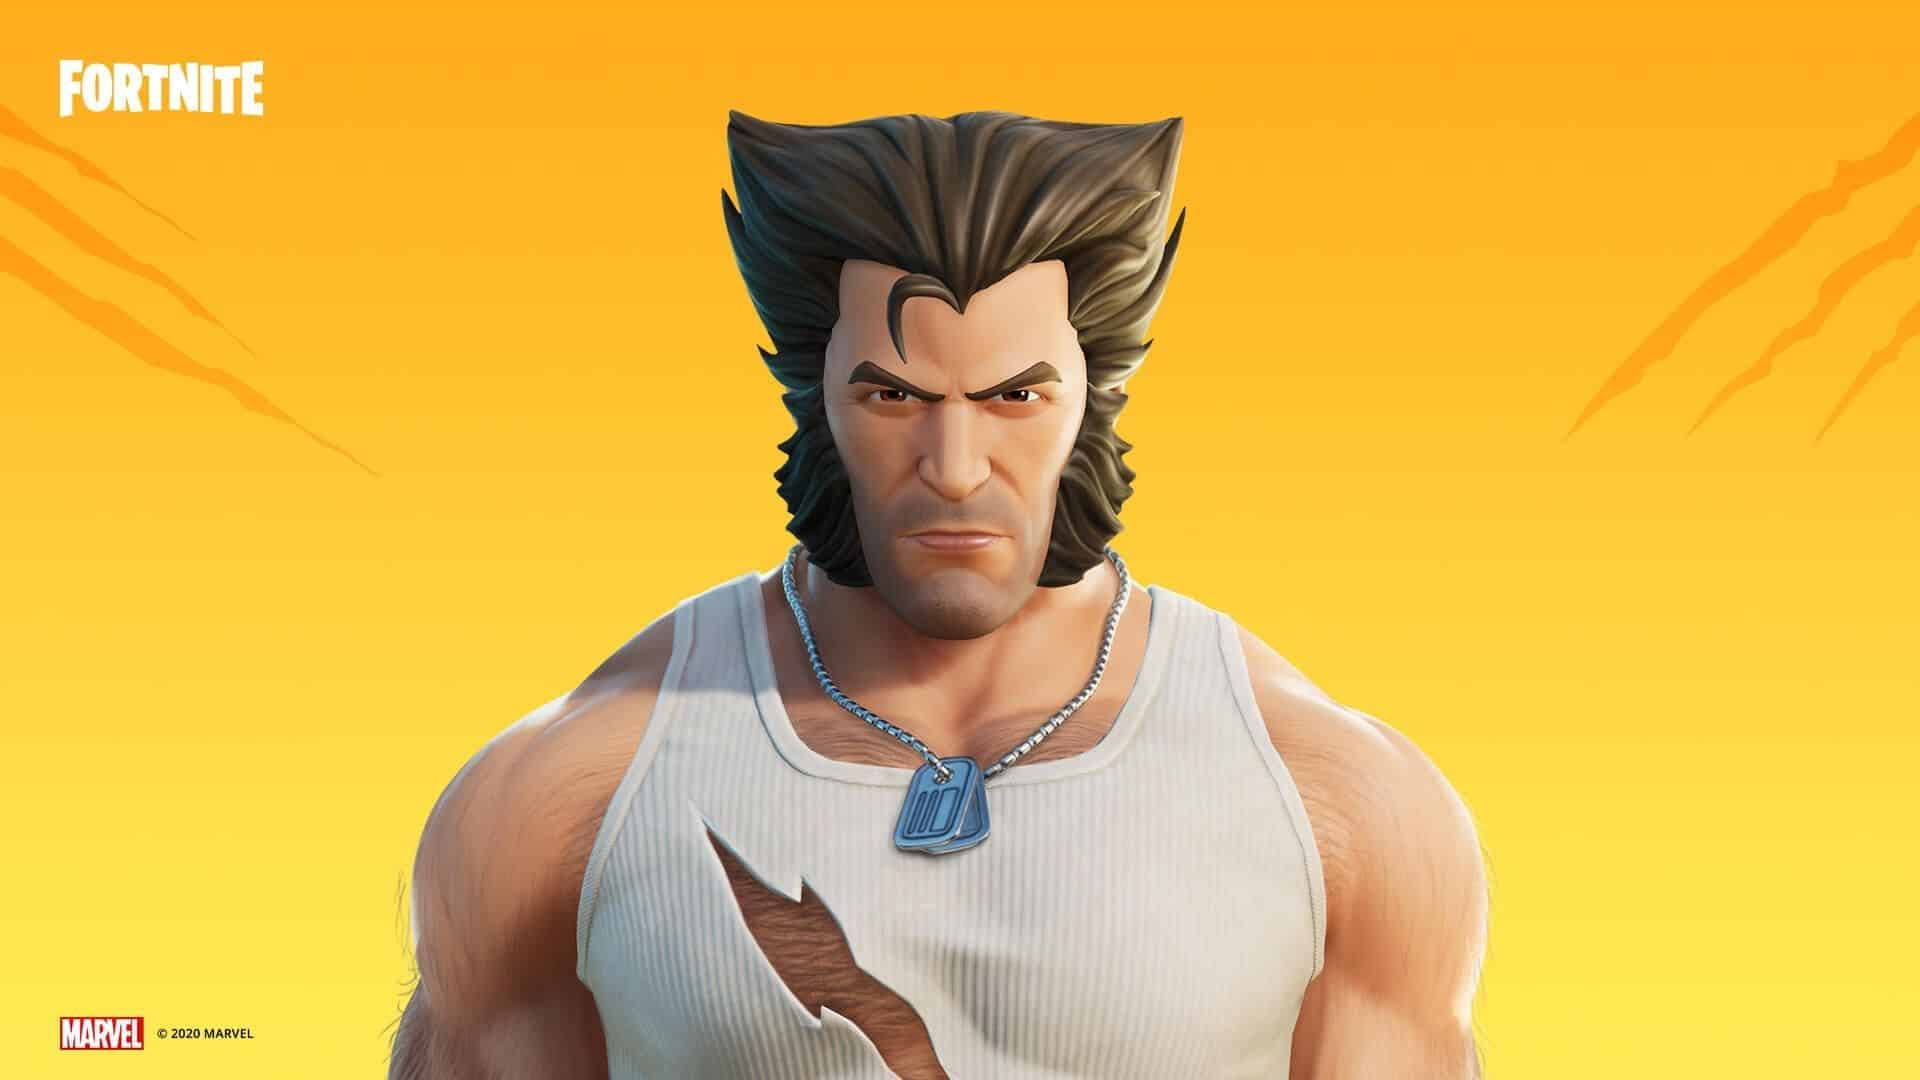 Logan in costume in Fortnite